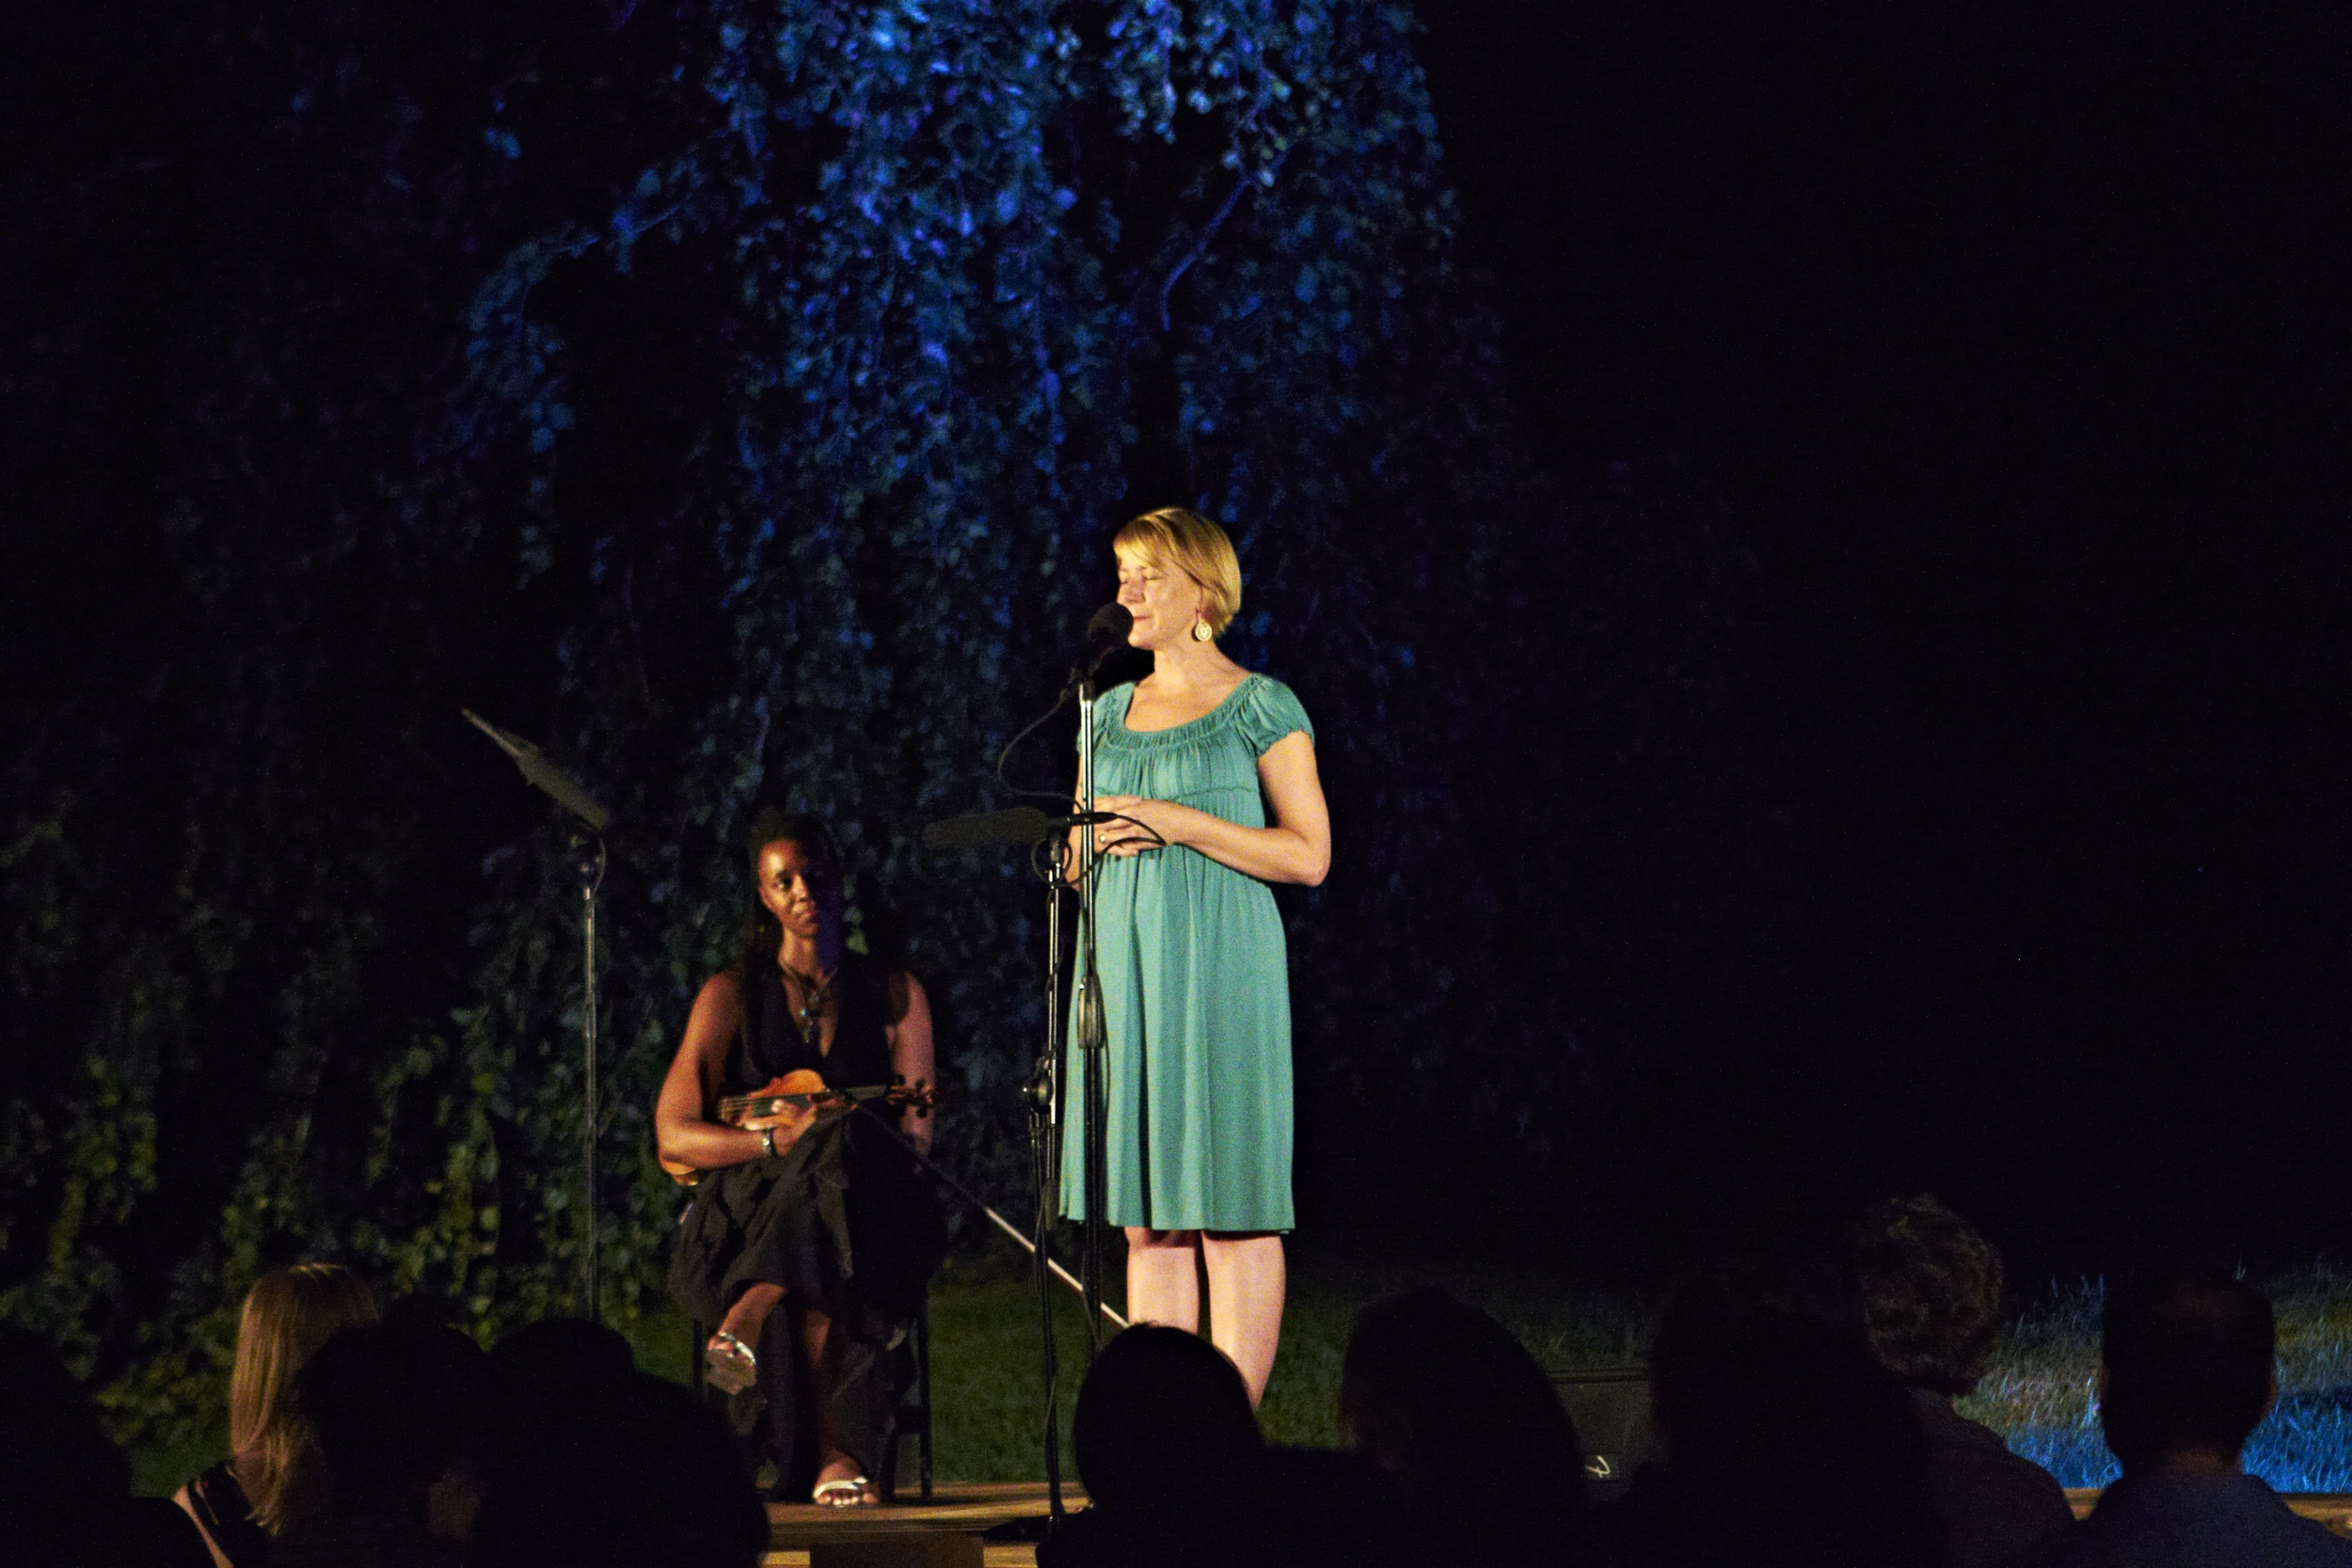 Lighting and audio for an outdoor storytelling event